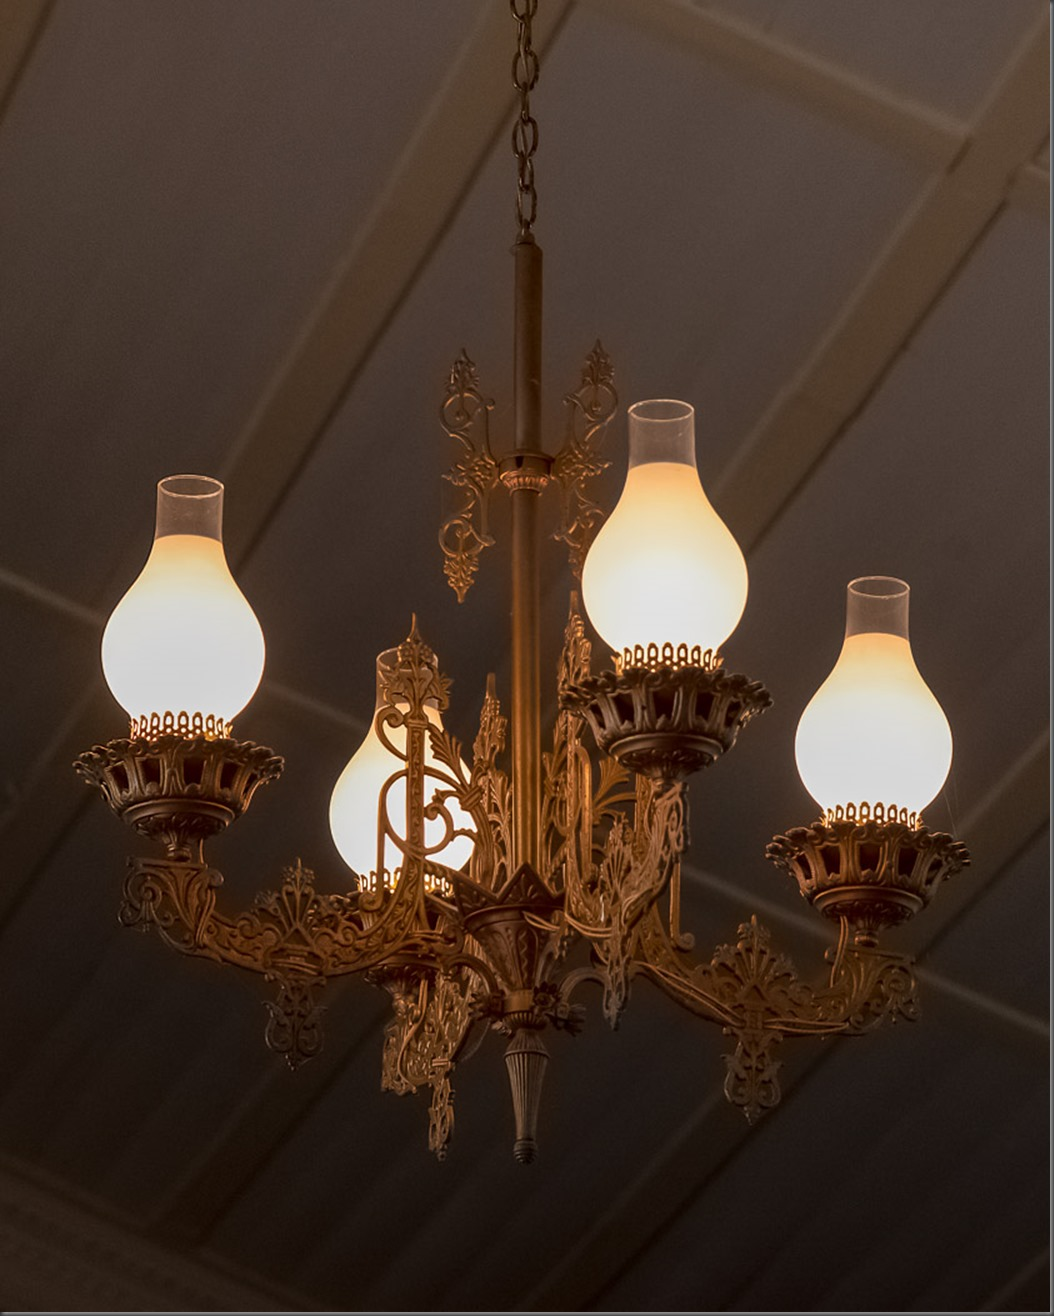 170 Year Old Light Fixtures